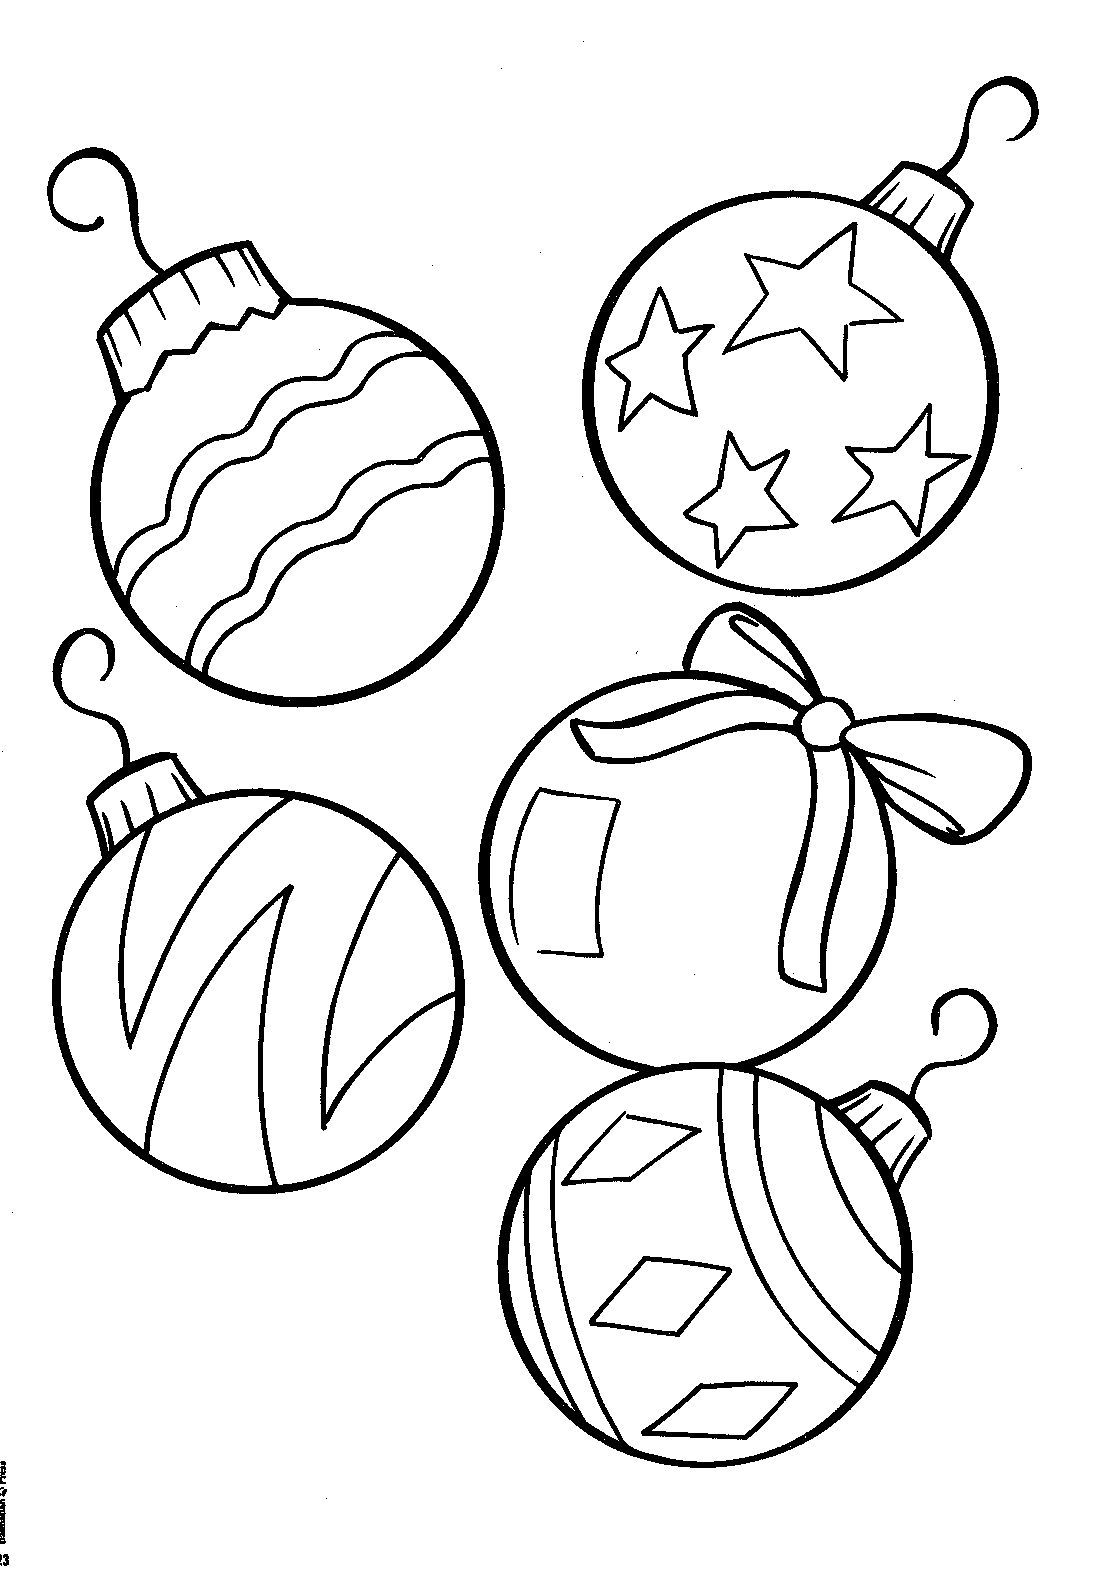 Pin By Emilka On Coloring Christmas Decorations Printable Christmas Coloring Pages Grinch Coloring Pages Christmas Coloring Sheets